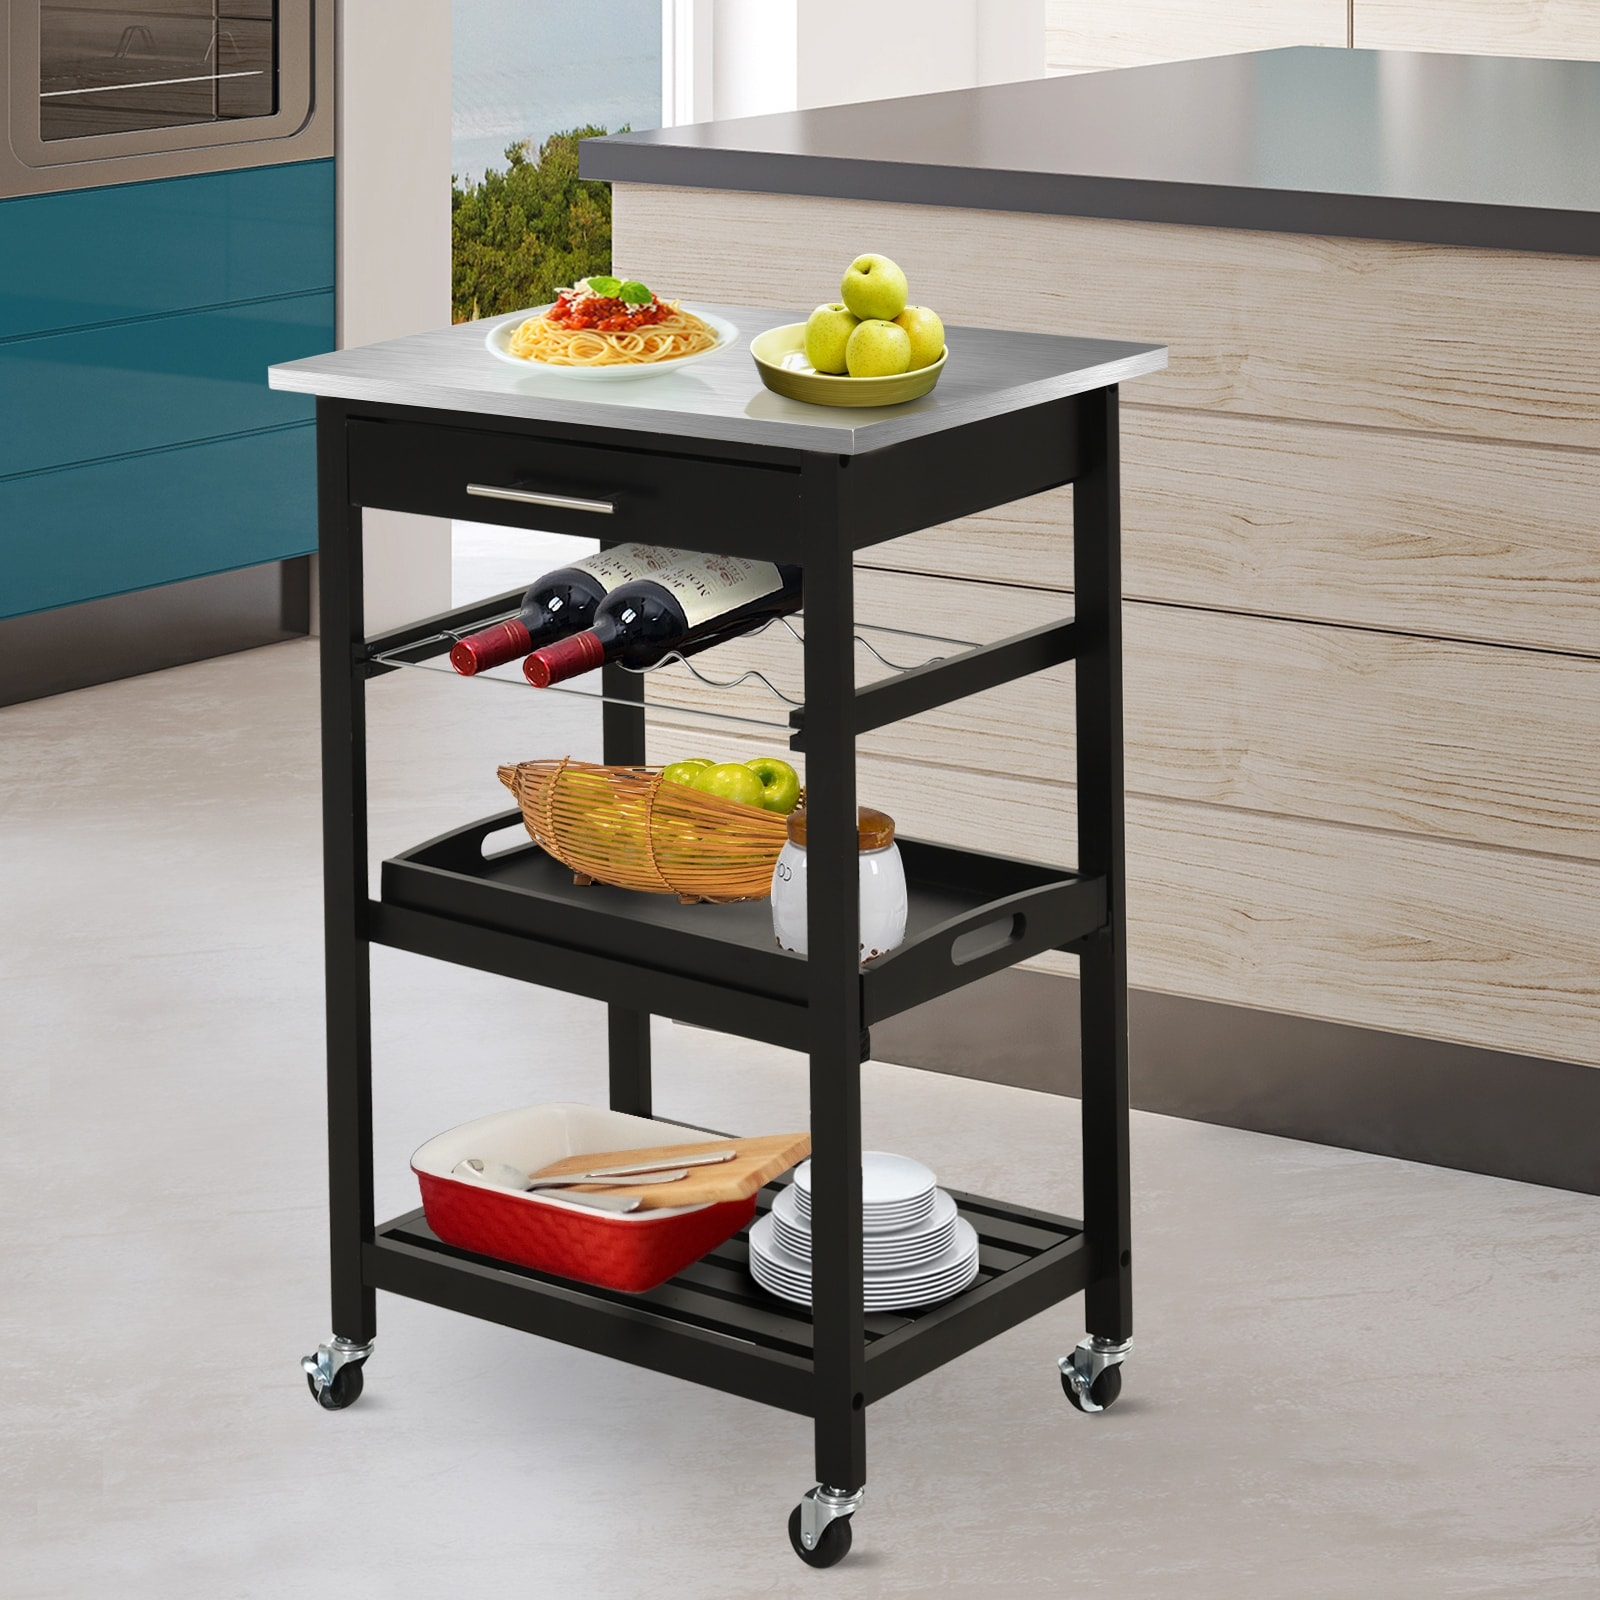 Shop Black Friday Deals On Homcom Pine 3 Tier Multifunction Rolling Kitchen Island Cart With Open Storage Shelves Wine Rack Stainless Steel Top Overstock 31628482